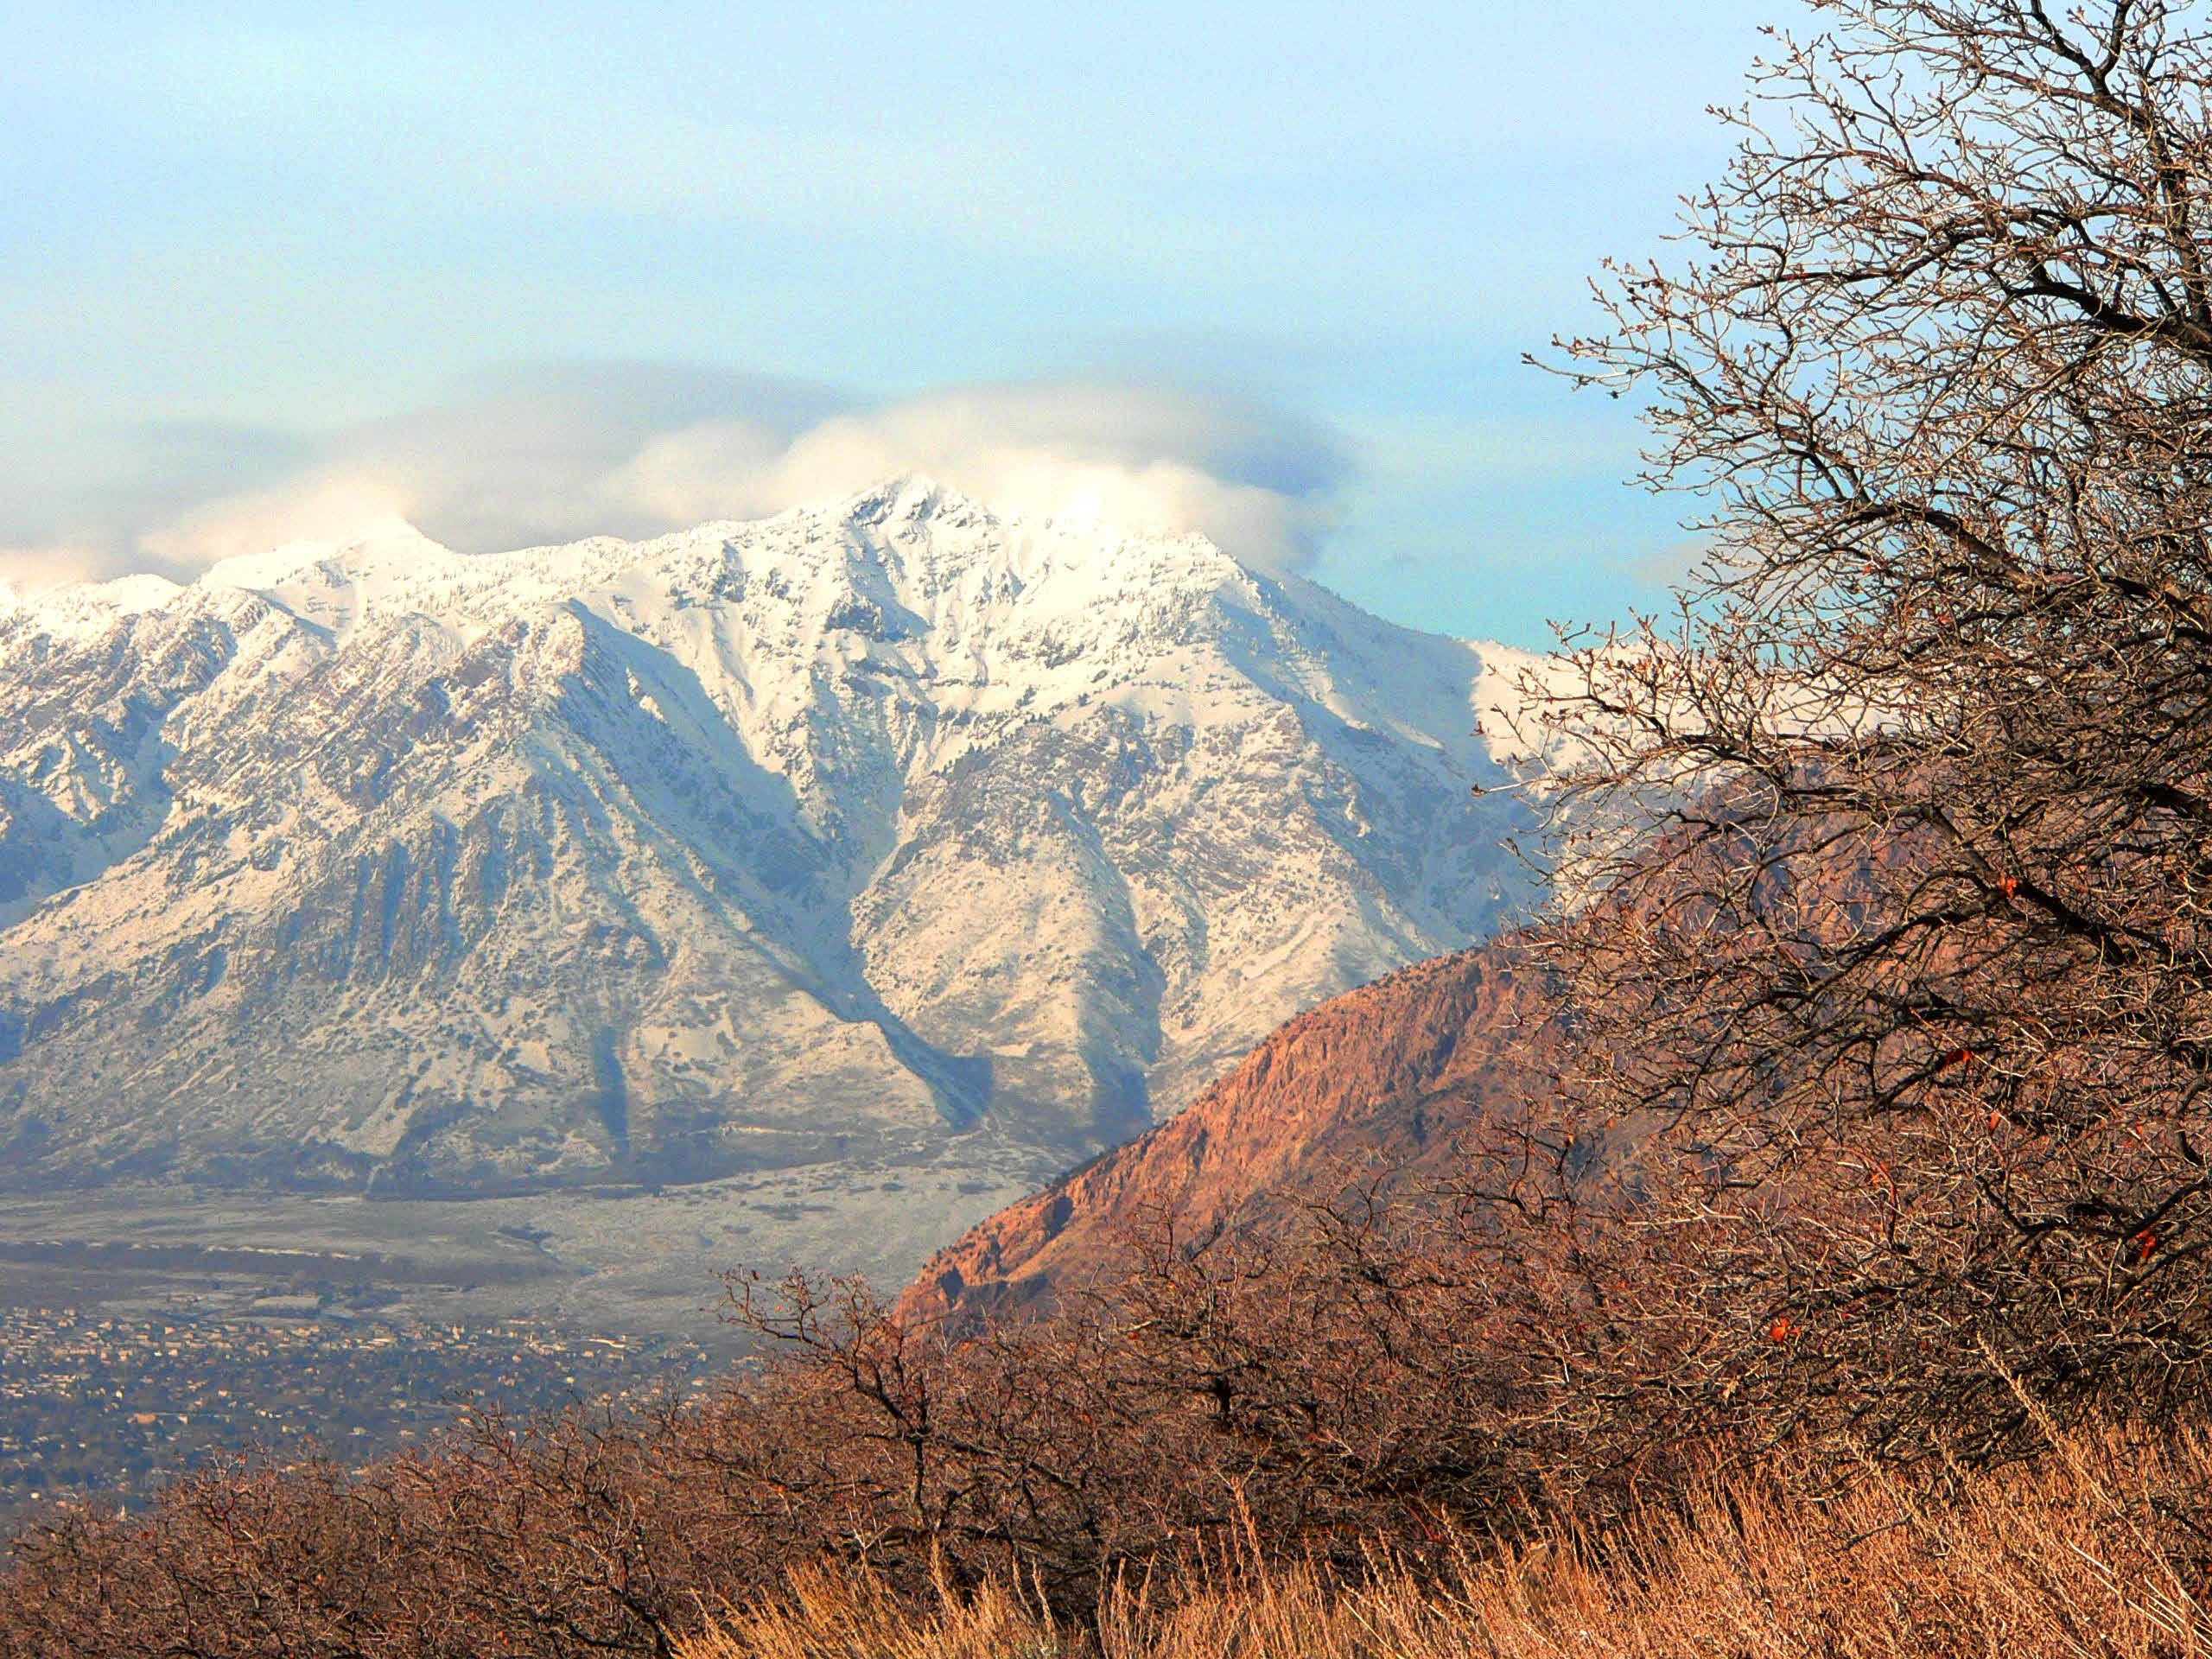 Wowcheck out this view of Mount Ben Lomond Mountain in